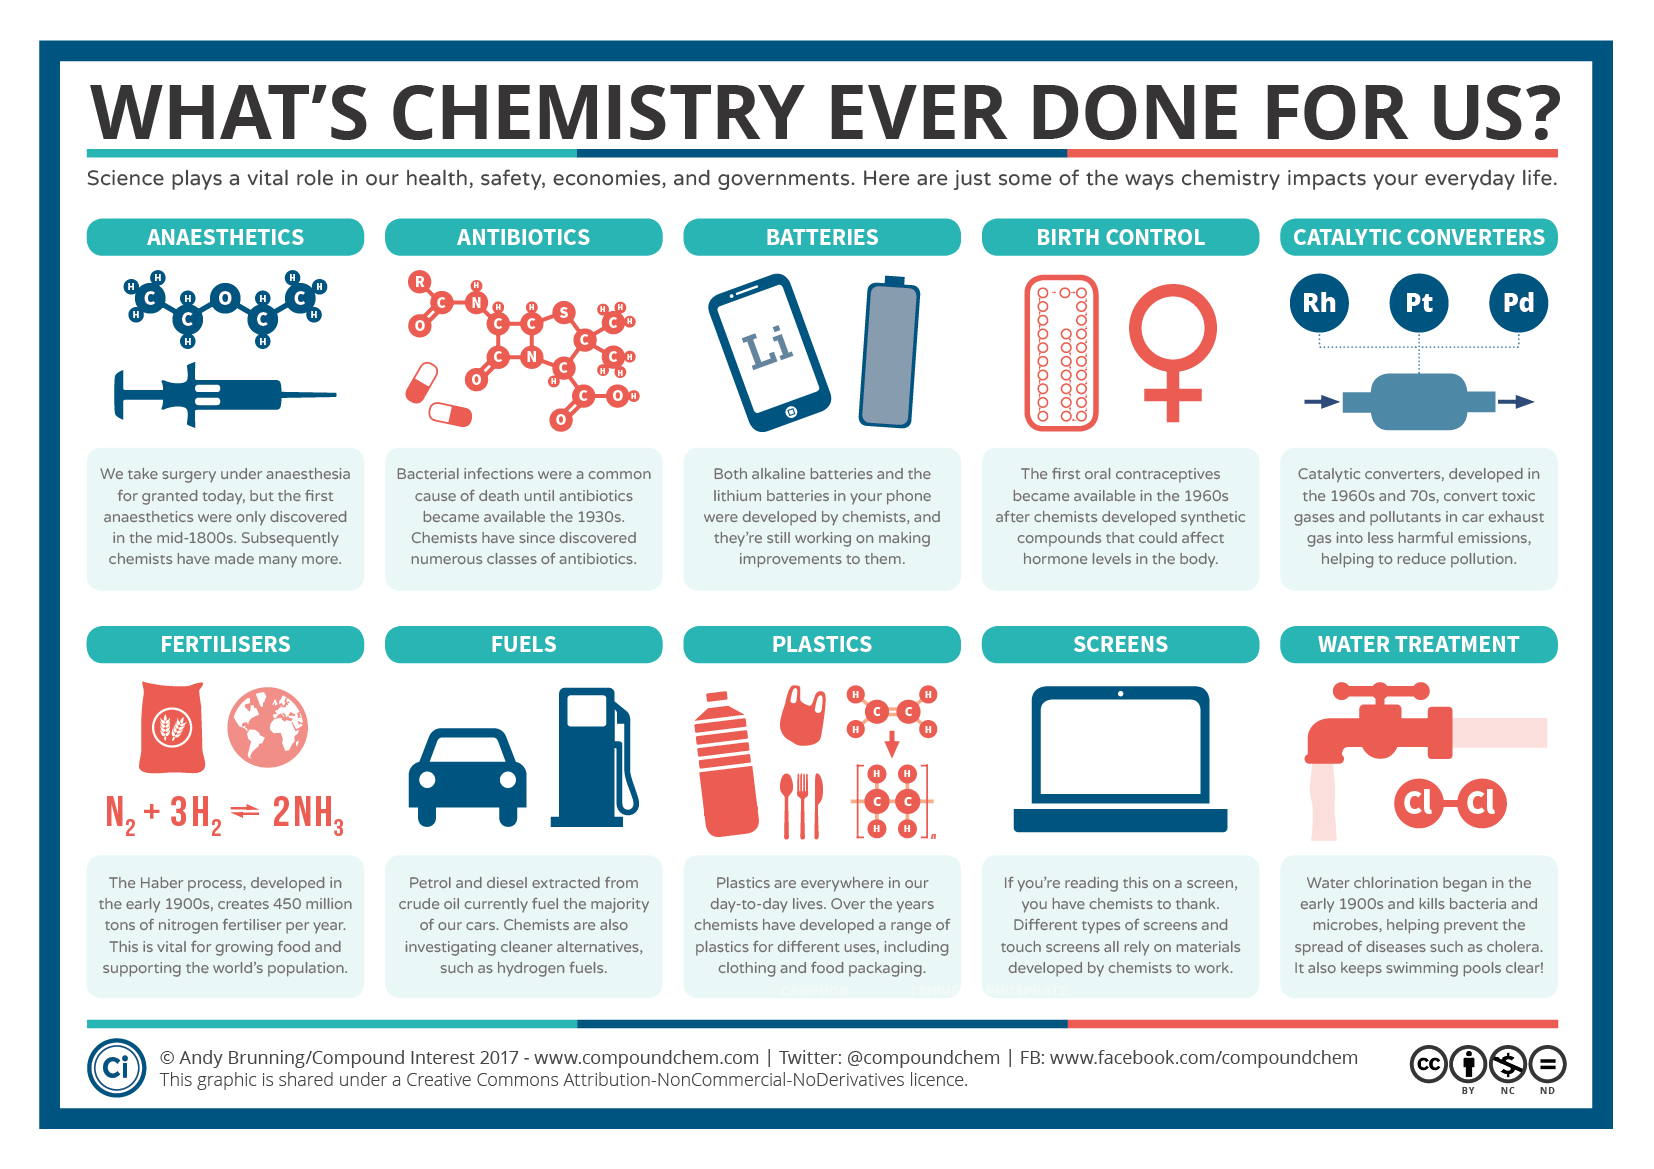 Compound interest a guide to chemical hazard symbols the march for science ten things that chemistry has done for us biocorpaavc